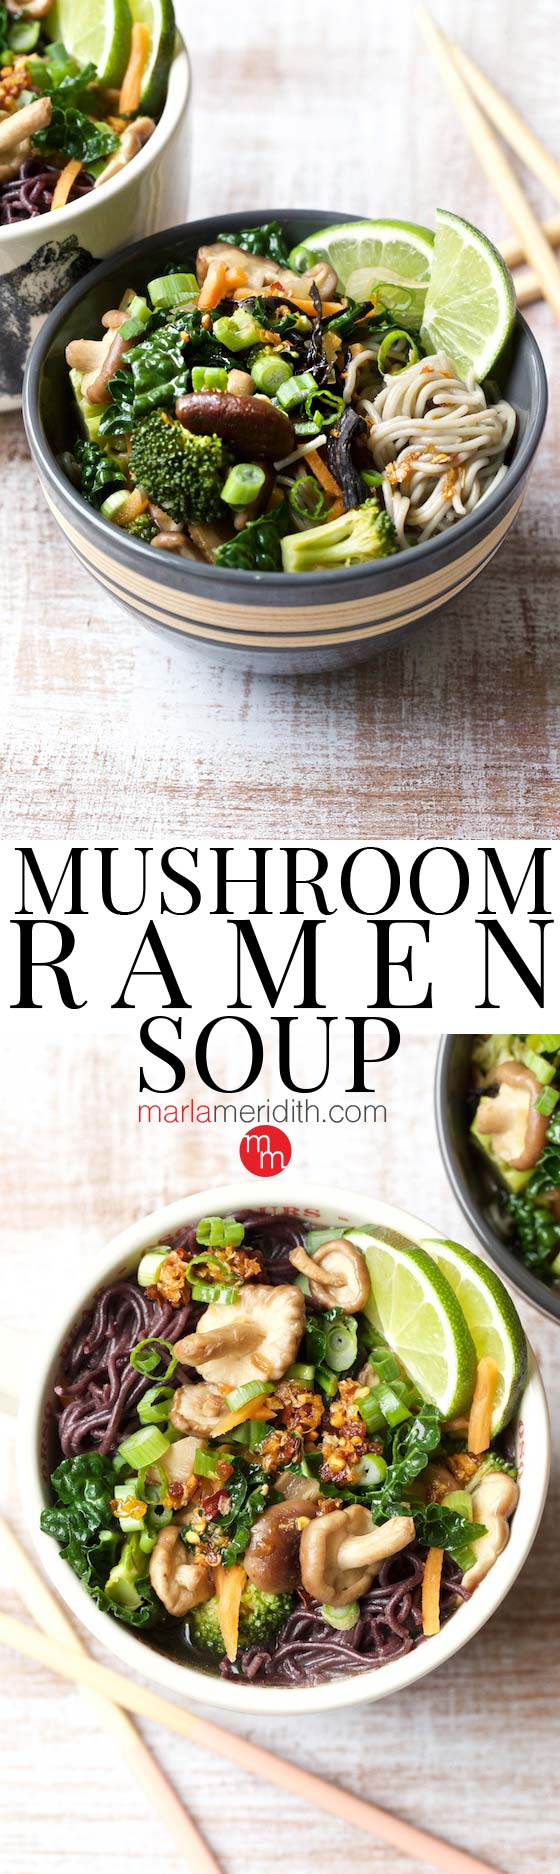 This Mushroom Ramen Soup recipe will swoon vegetarians and all ramen lovers! MarlaMeridith.com